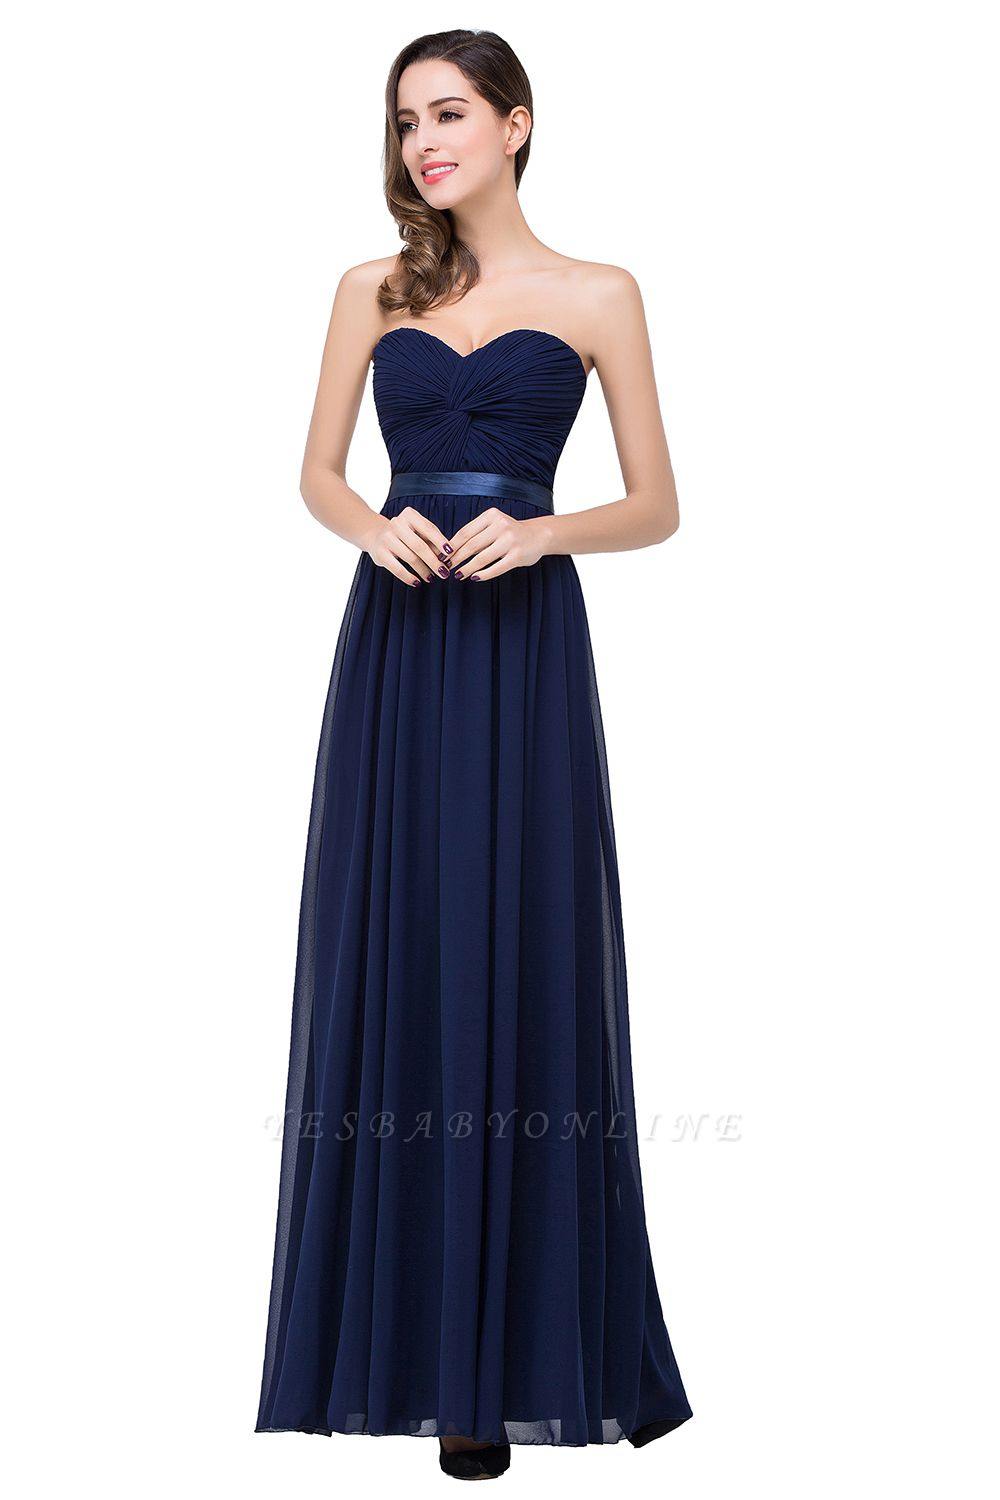 ADELINA | Simple A-line Strapless Chiffon Bridesmaid Dress with Draped